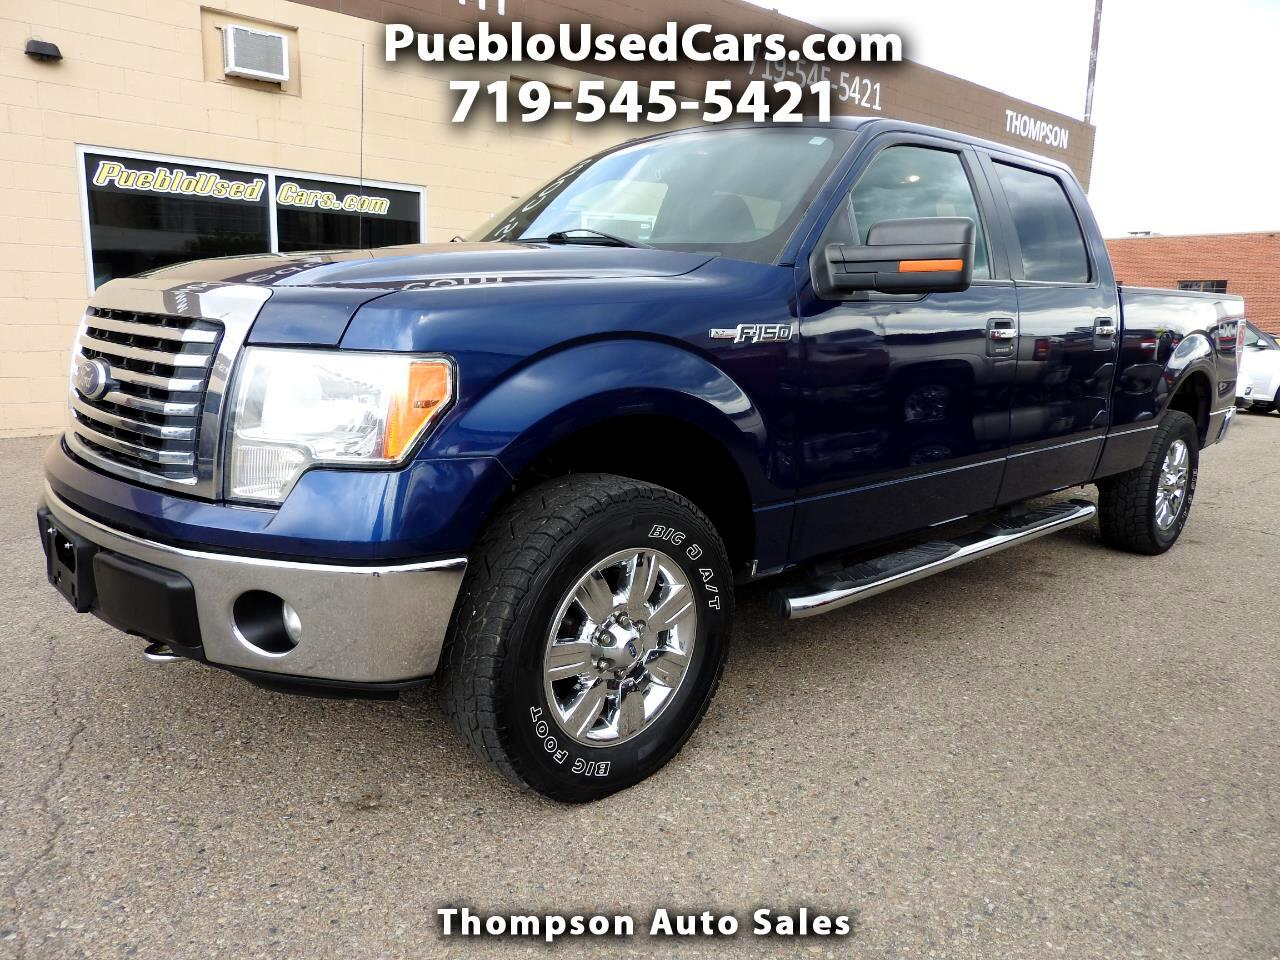 2012 Ford F-150 XLT SuperCrew Long Bed 4WD